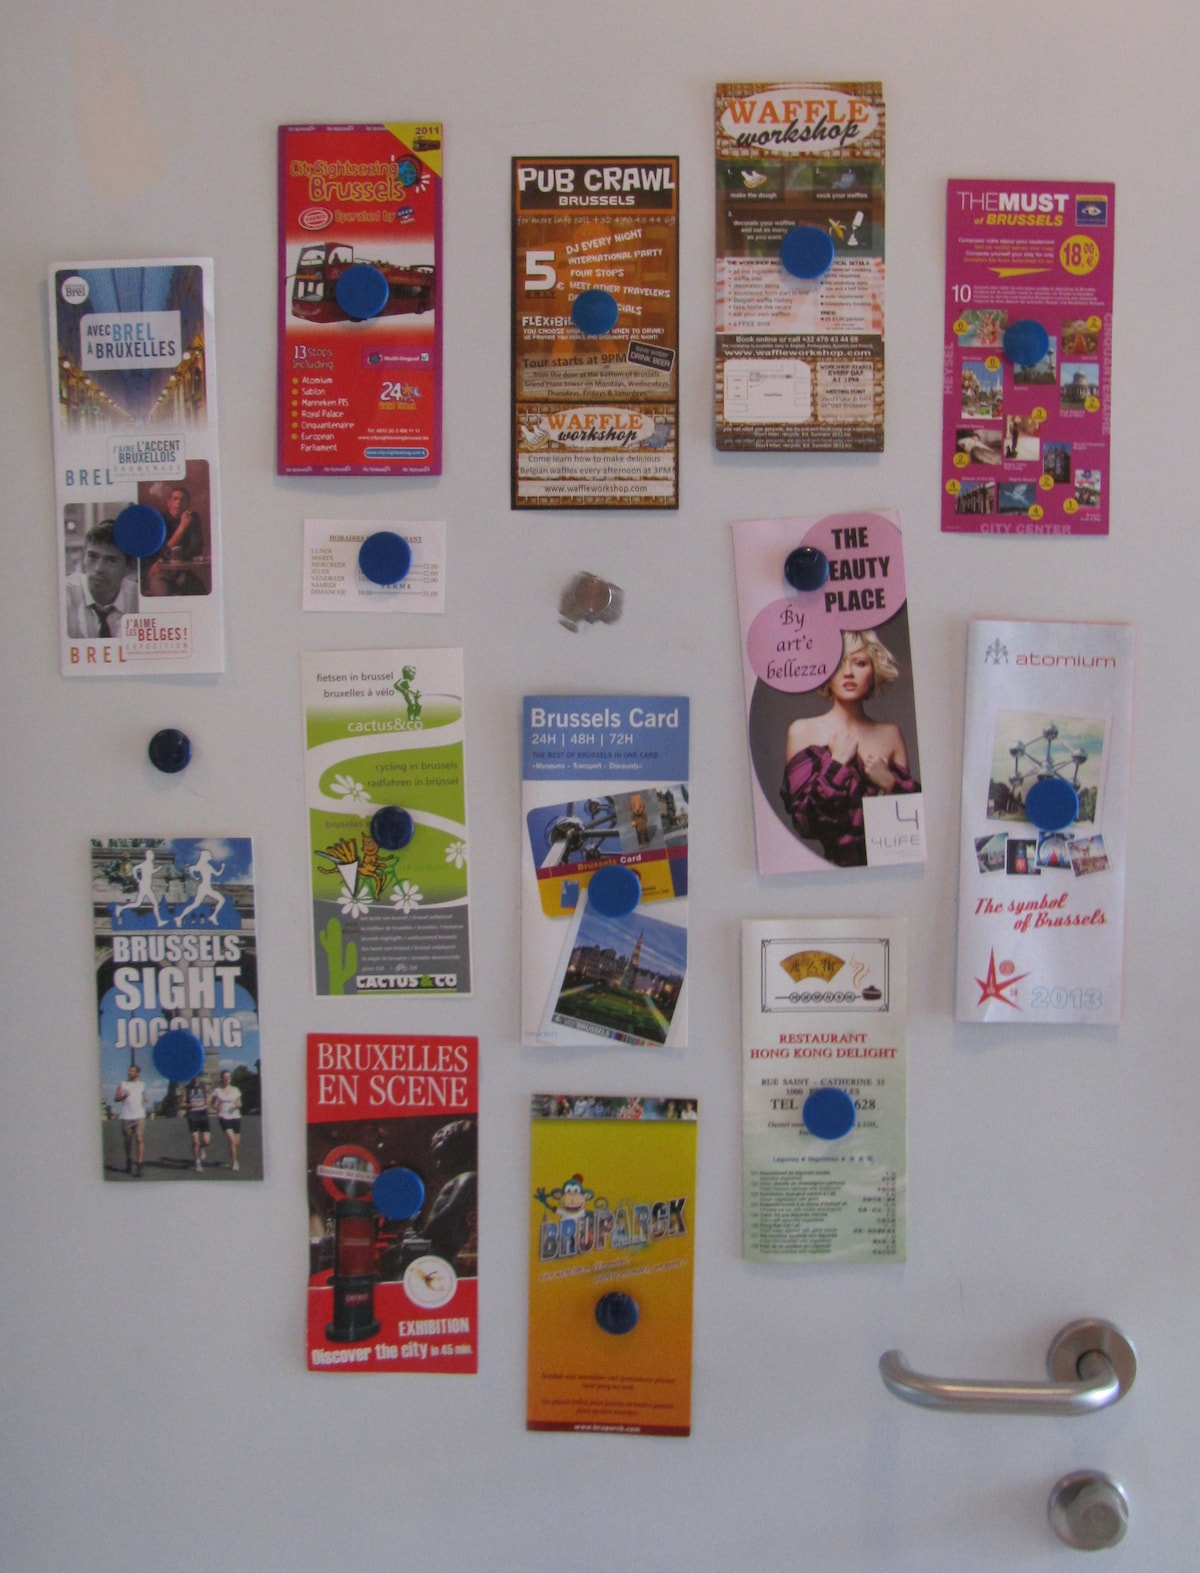 Many leaflets and shopping caddy cart (not captured here) at your disposal